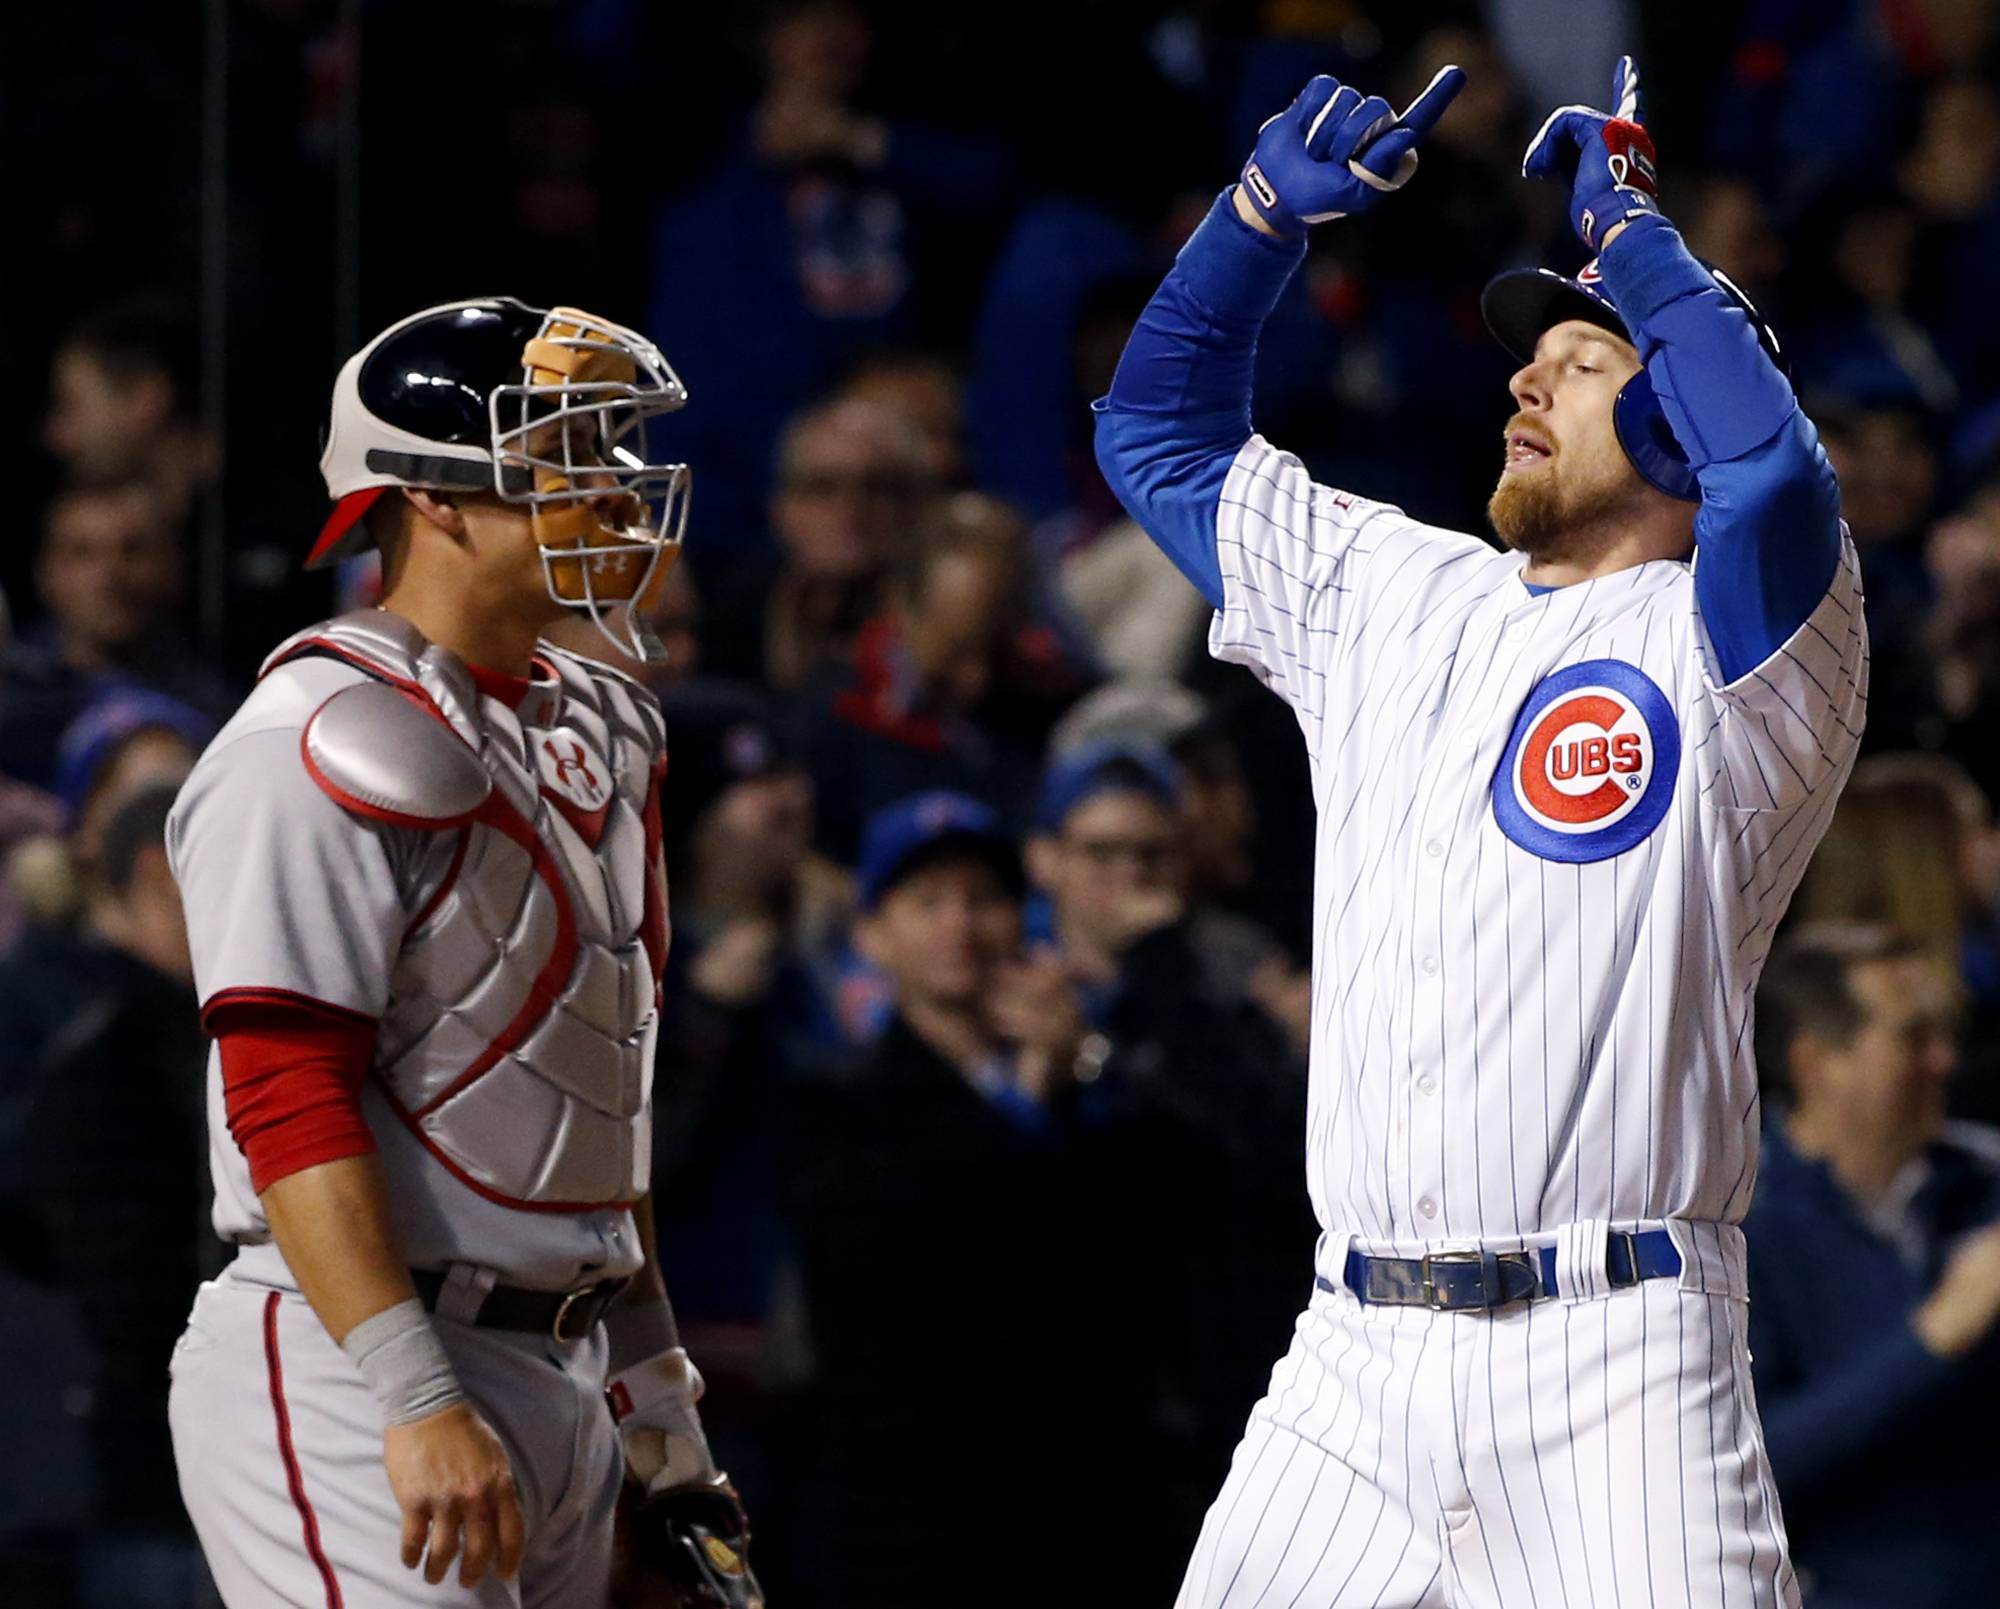 Ben Zobrist put the Cubs ahead 2-0 with a single in the fourth, and he added a 2-run homer in the eighth to help the Cubs to a 5-2 victory, their fourth win in a row. Kyle Hendricks pitched 6 scoreless innings of 2-hit ball for the Cubs before giving way to the bullpen. The Nationals got their runs on a 2-run homer by Jayson Werth in the ninth.